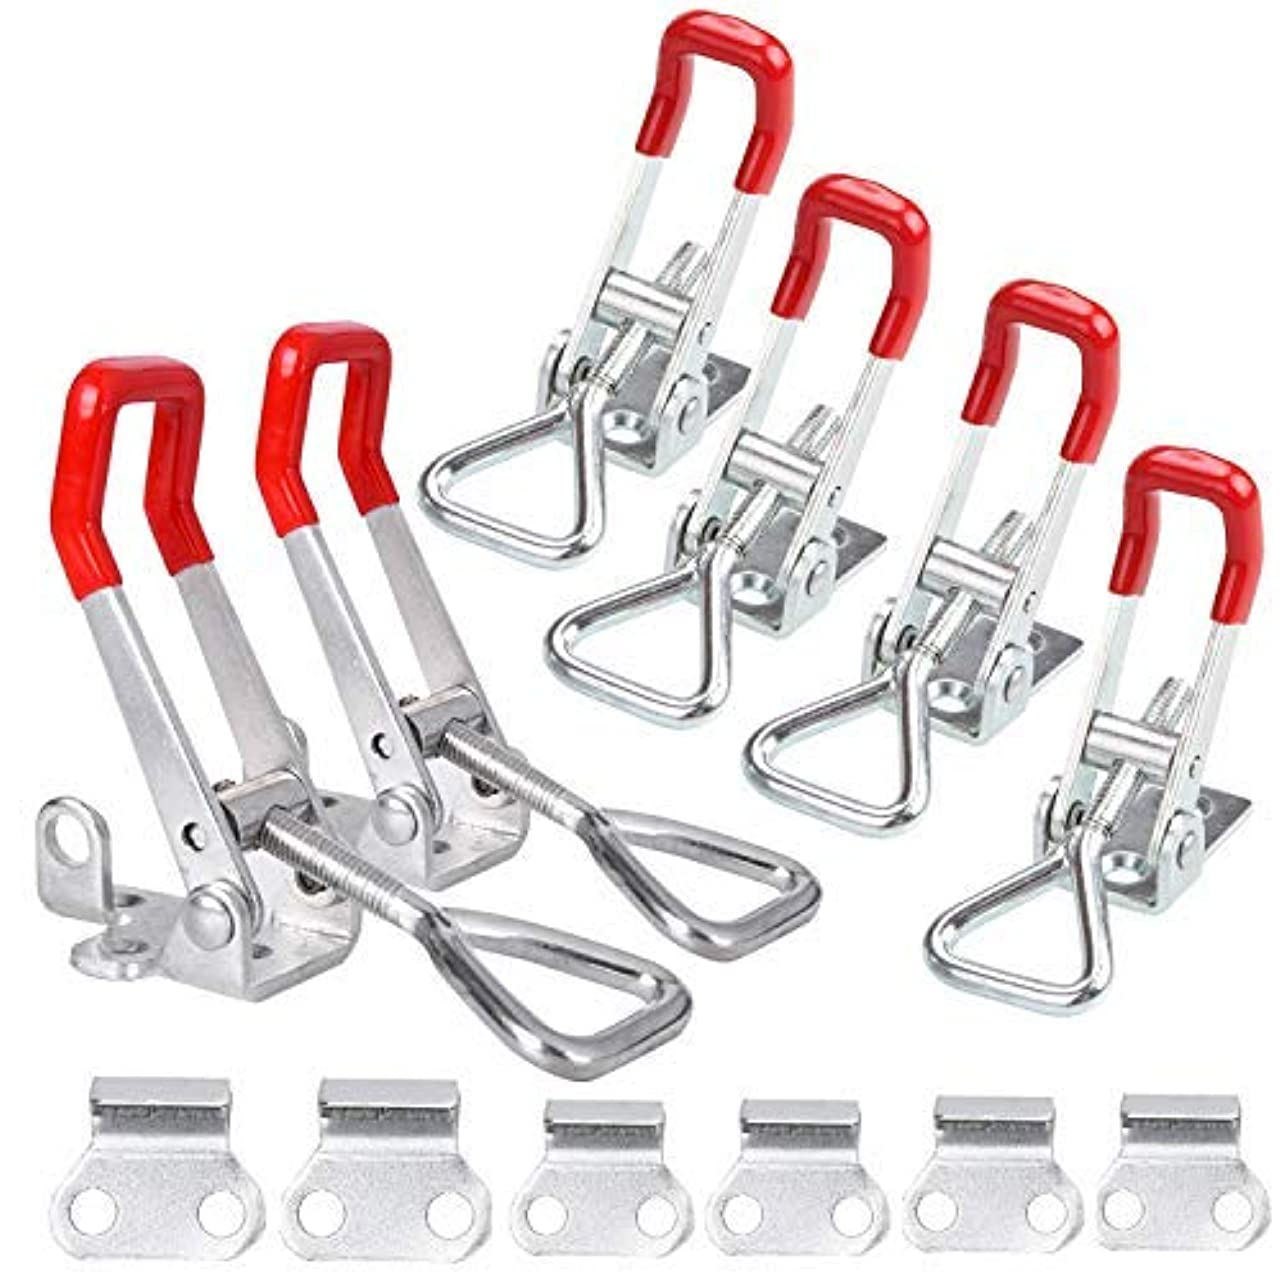 頑張るフェミニン暗殺するCBTONE Toggle Clamp 4001 and Pull Action Latch Type Toggle Clamp, Heavy Duty Adjustable Hand Tool Quick Release Pull Latch for Door, Tool Boxes, Trunk, Jig (6 Pack) [並行輸入品]